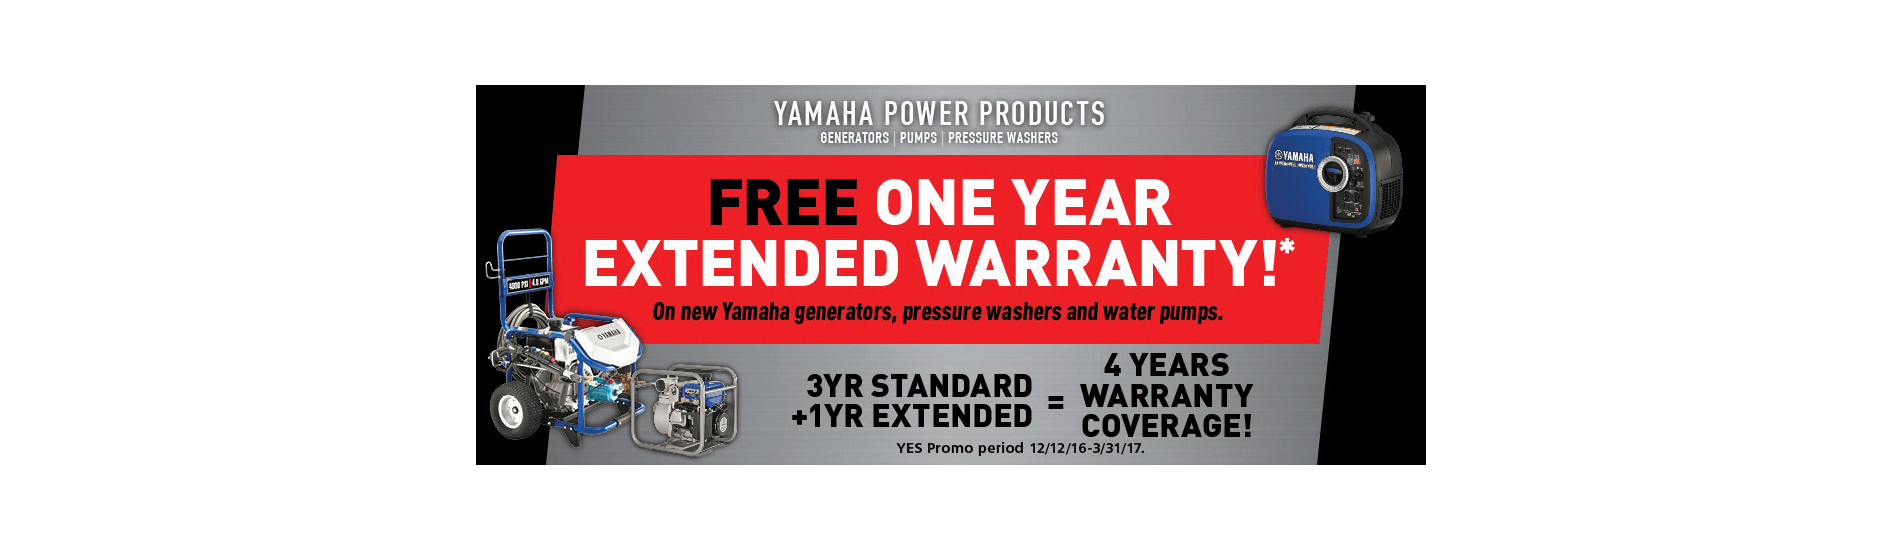 yamaha-warranty